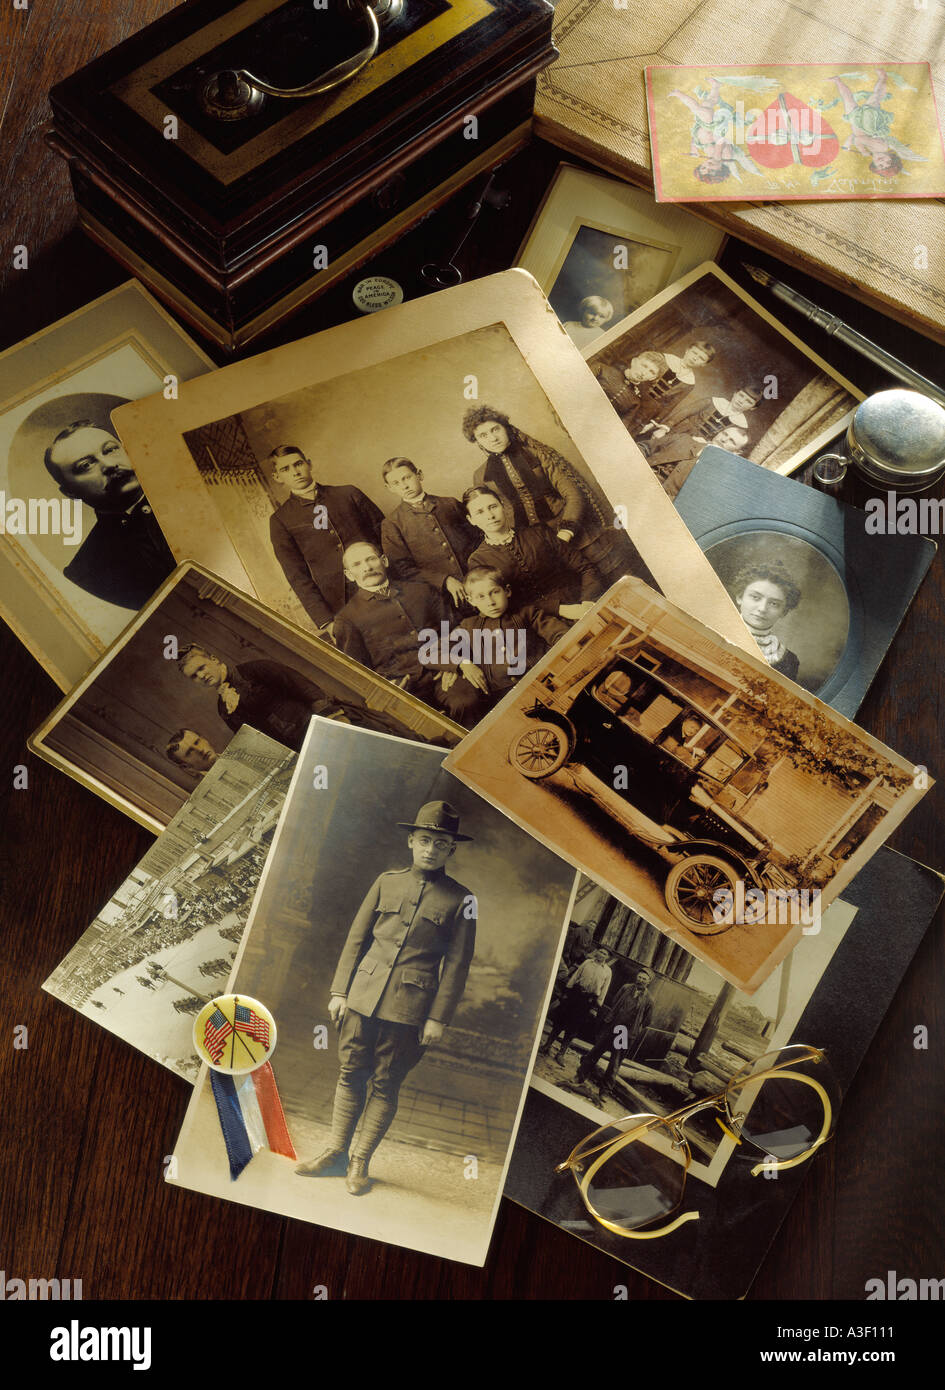 Photo editorial pictorial depiction of generic family history from 1800s through WW1 with antique photos related items - Stock Image